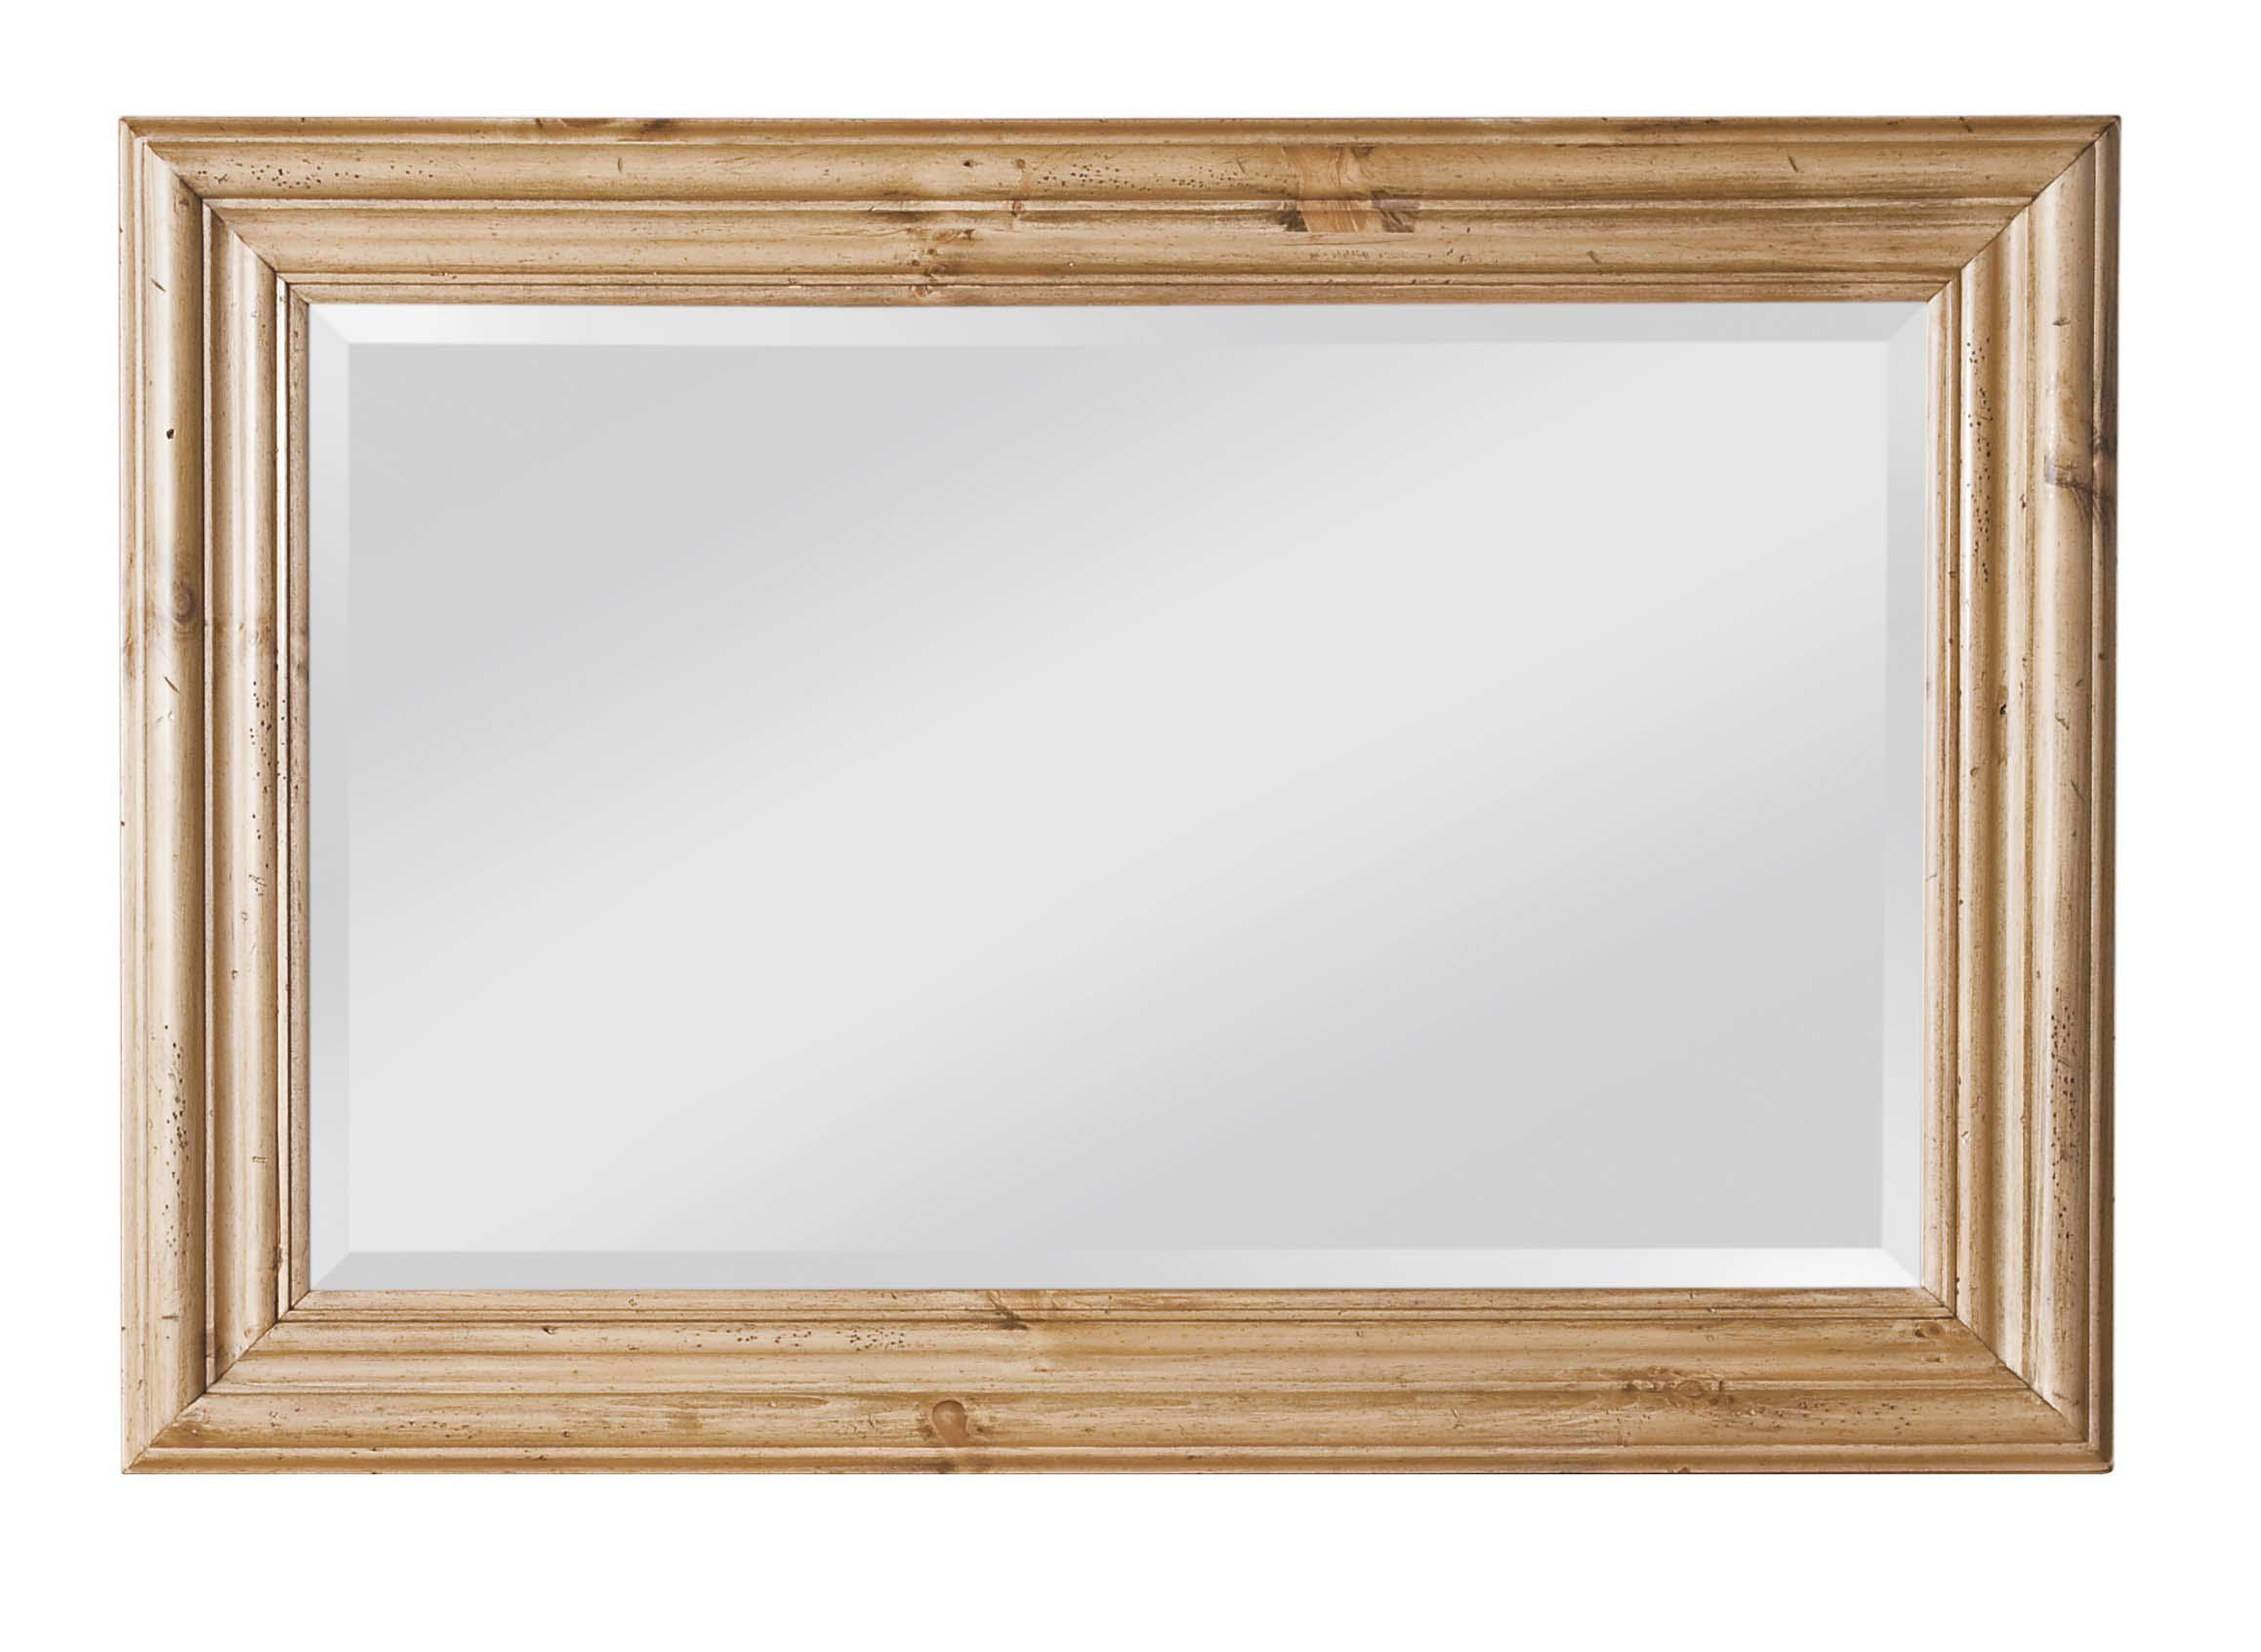 Kincaid Furniture Homecoming Landscape Mirror - Item Number: 33-114